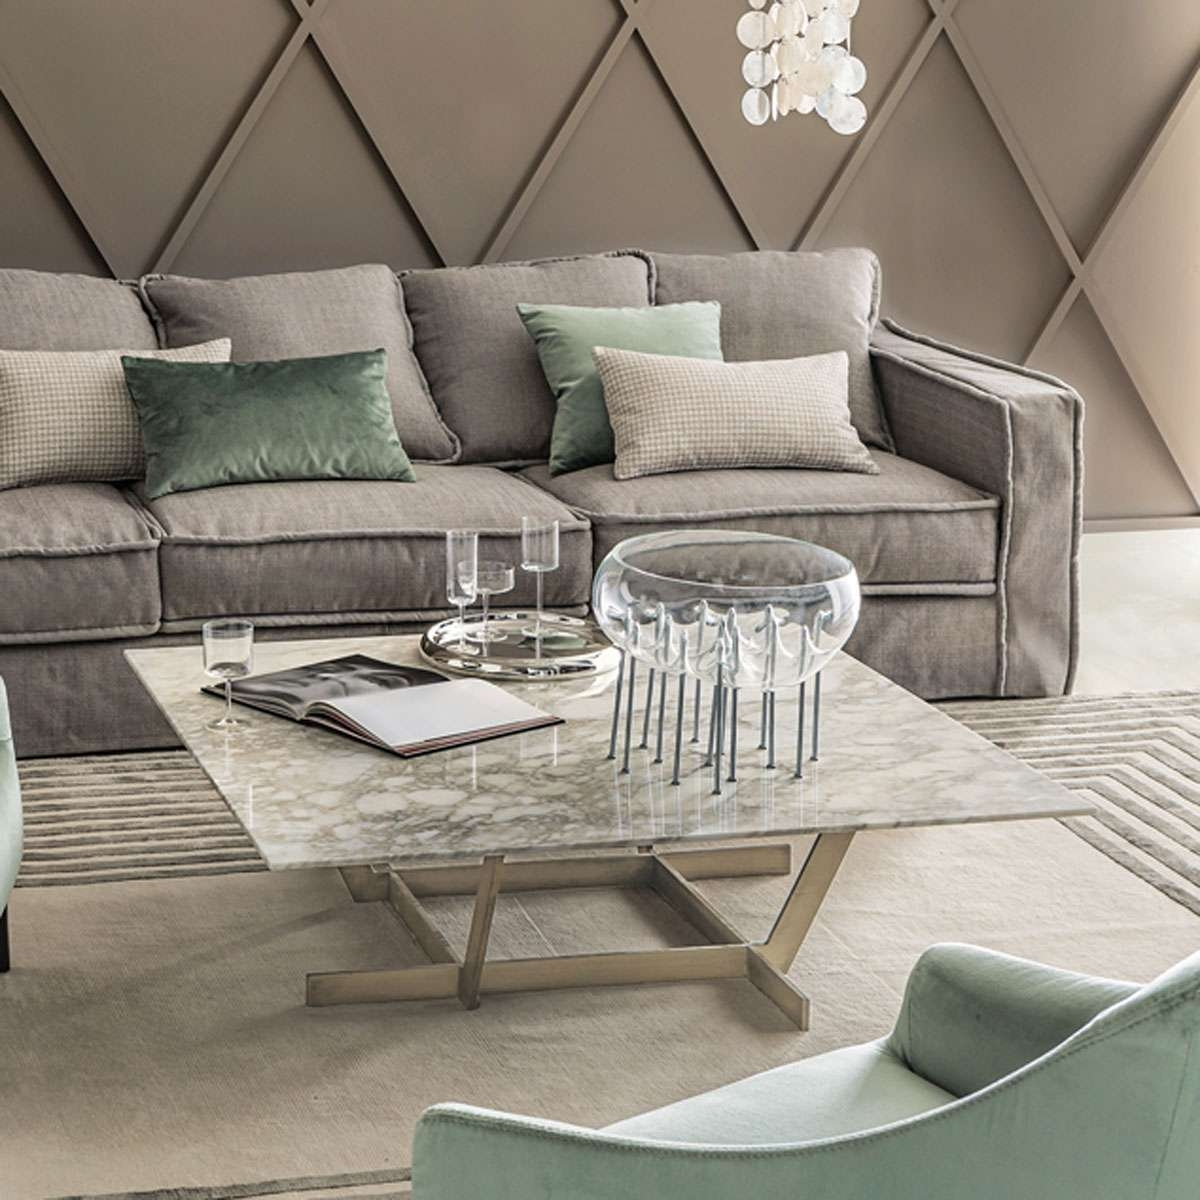 News – Ten Luxury Coffee Tables To Fall In Love With (View 15 of 20)